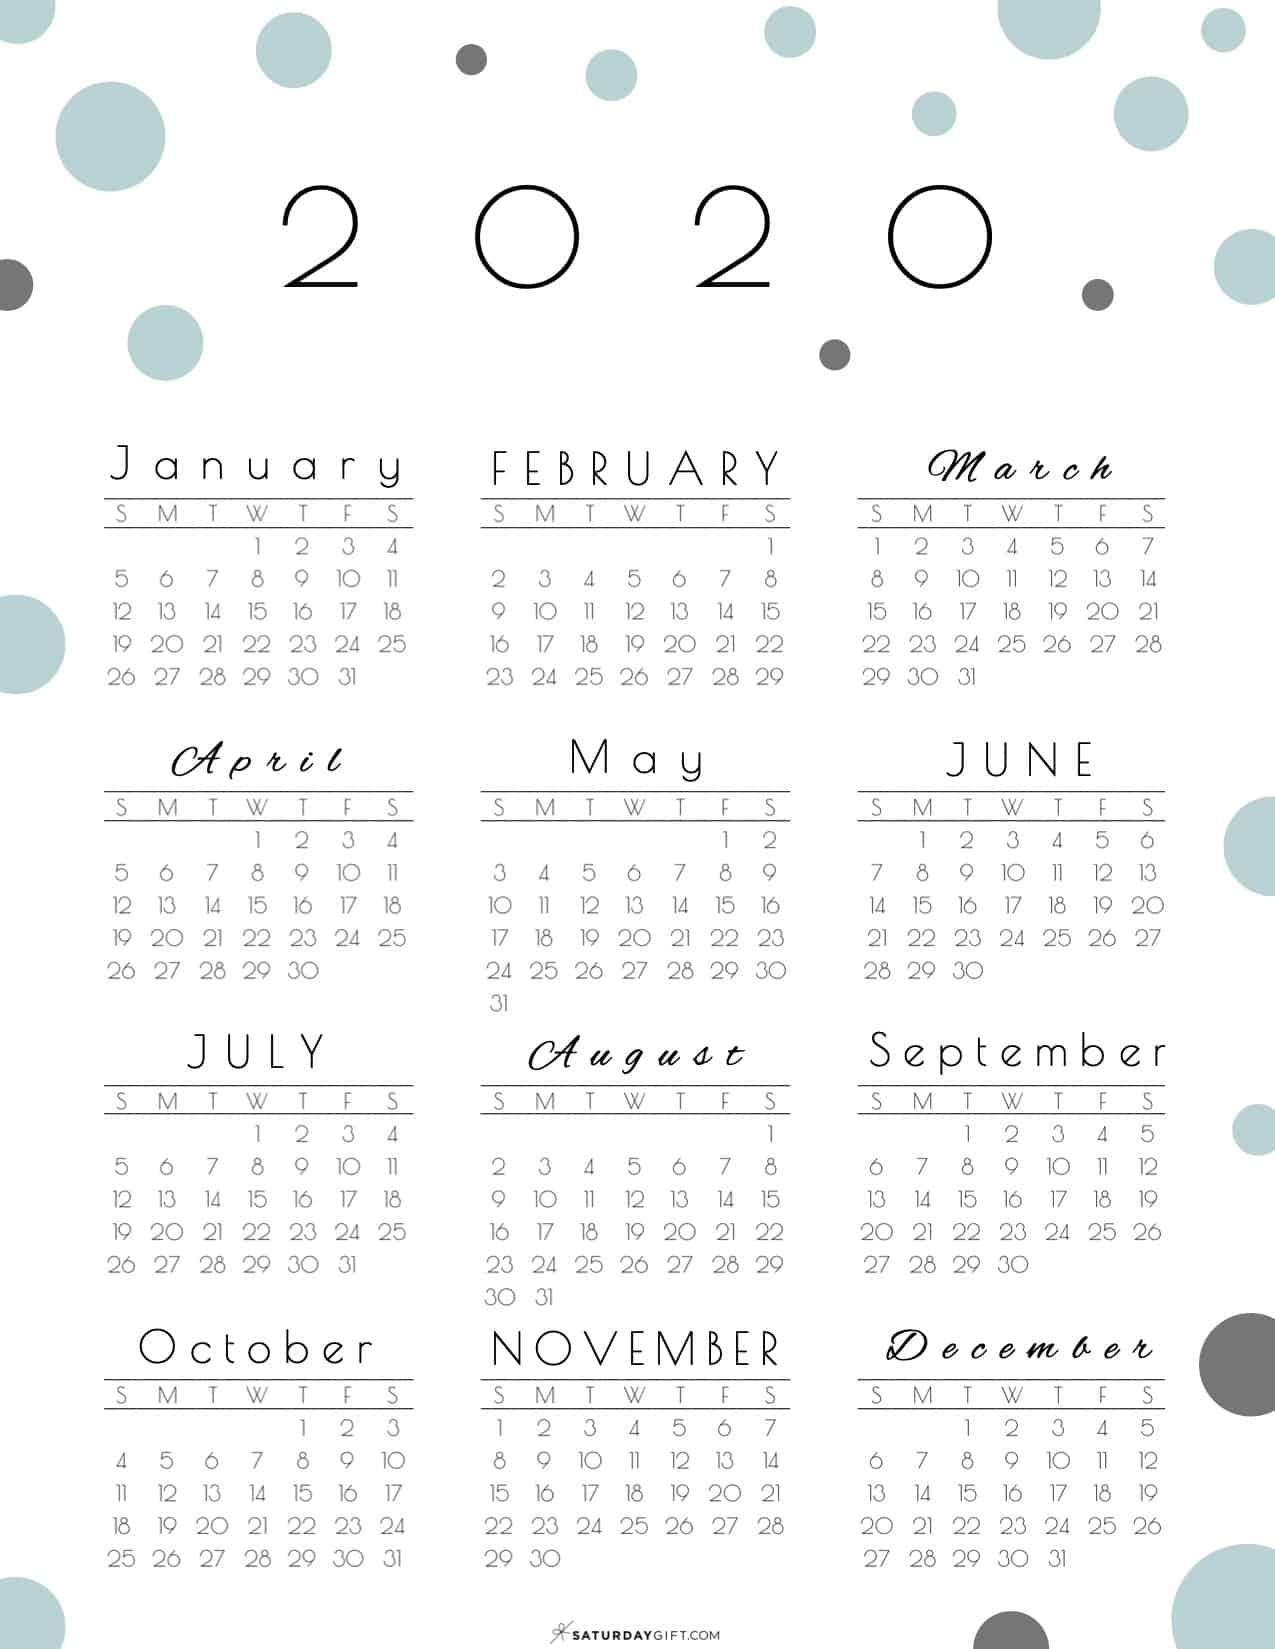 Year At A Glance Calendar 2020 - Pretty (And Free!) Printable pertaining to Printable Year At A Glance Calendar